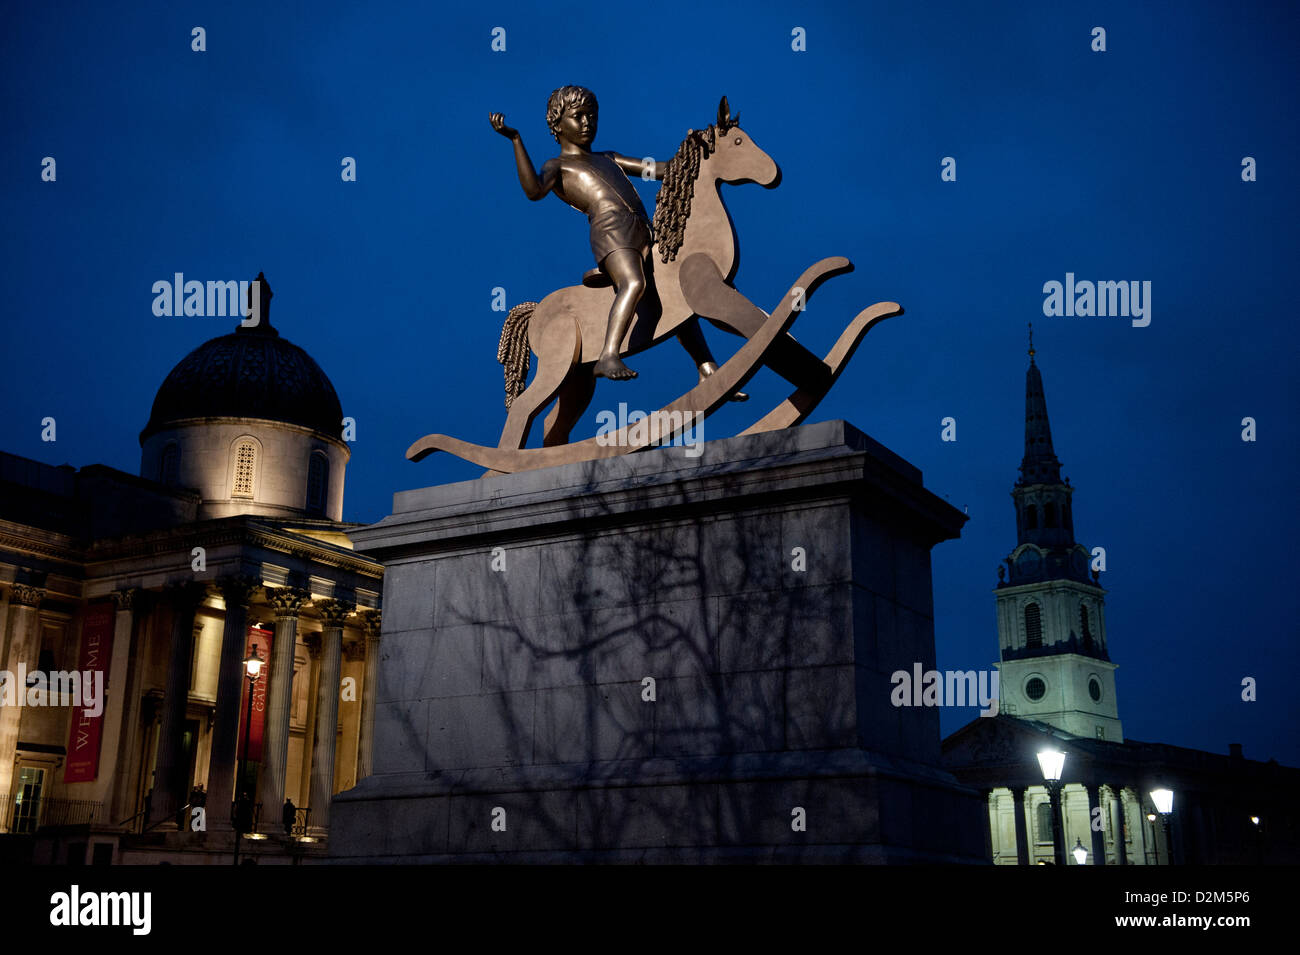 Trafalgar Square at Dusk showing Powerless Structures, Fig. 101 by Elmgreen and Dragset also known as Boy on a Rocking - Stock Image